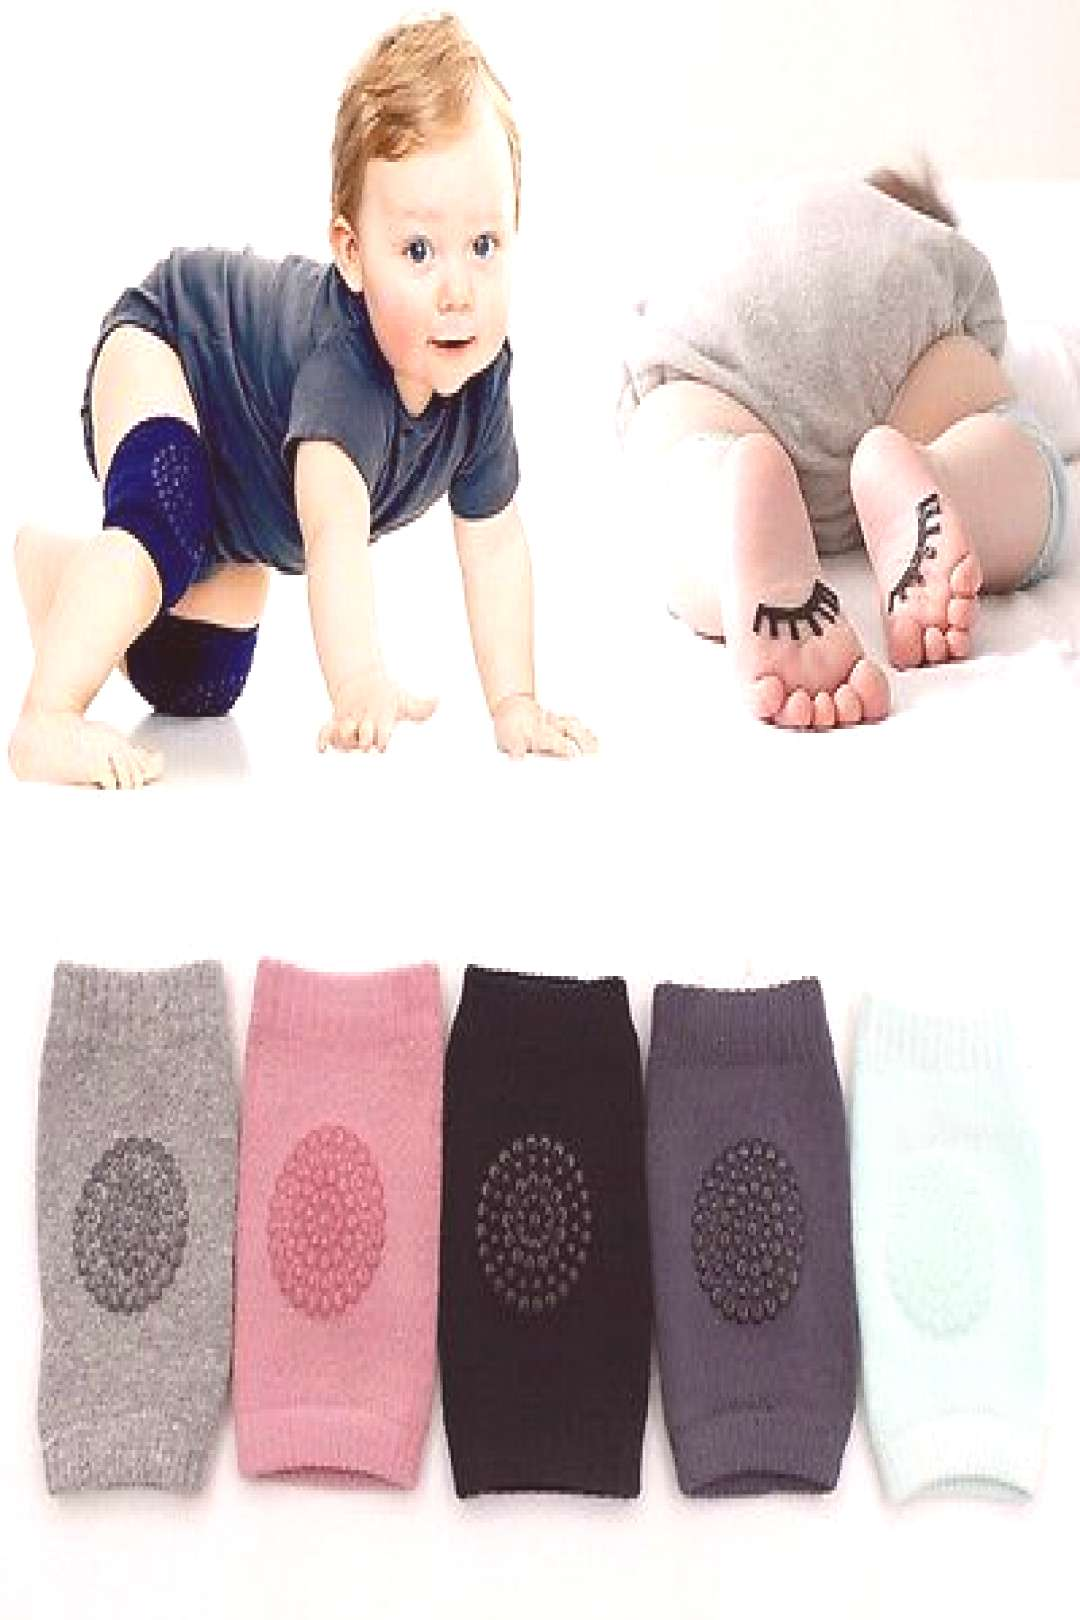 Toddlers Knee Pads Protector 1 pair New Baby Kids Safety Crawling Elbow Cushion Infants - Buy it No